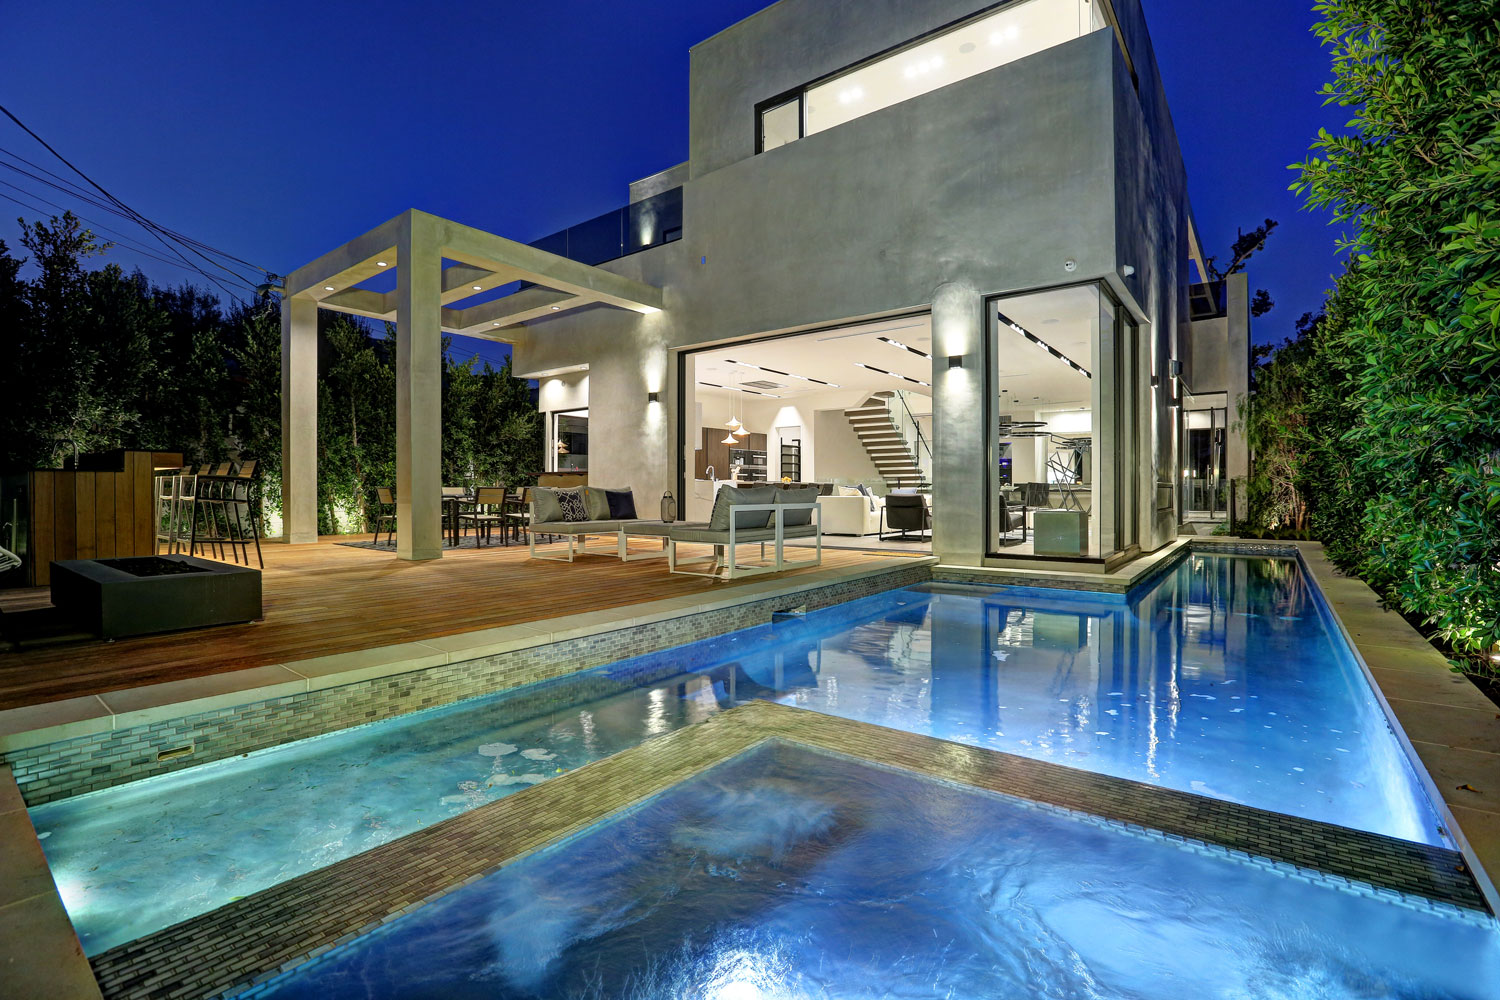 Modern Pool & Spa in Cubistic Home